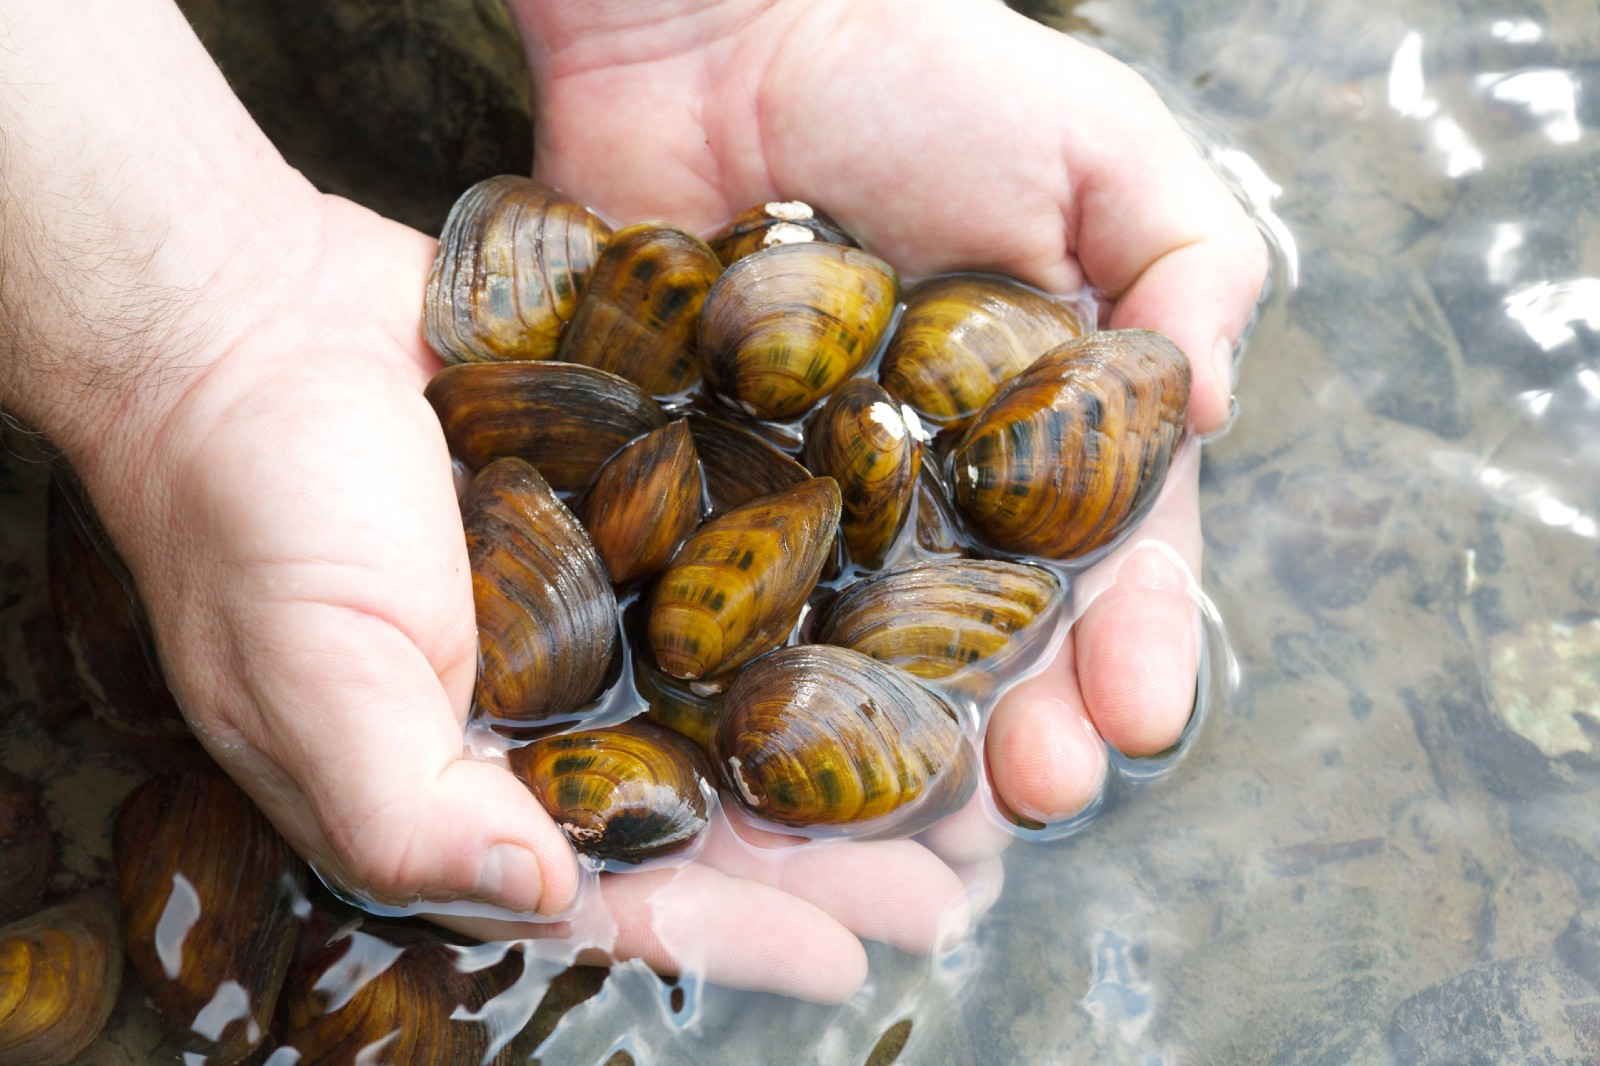 Flexing the mussels of freshwater rivers fish and wildlife cubshell mussel by ryan hagerty usfws north america sciox Image collections